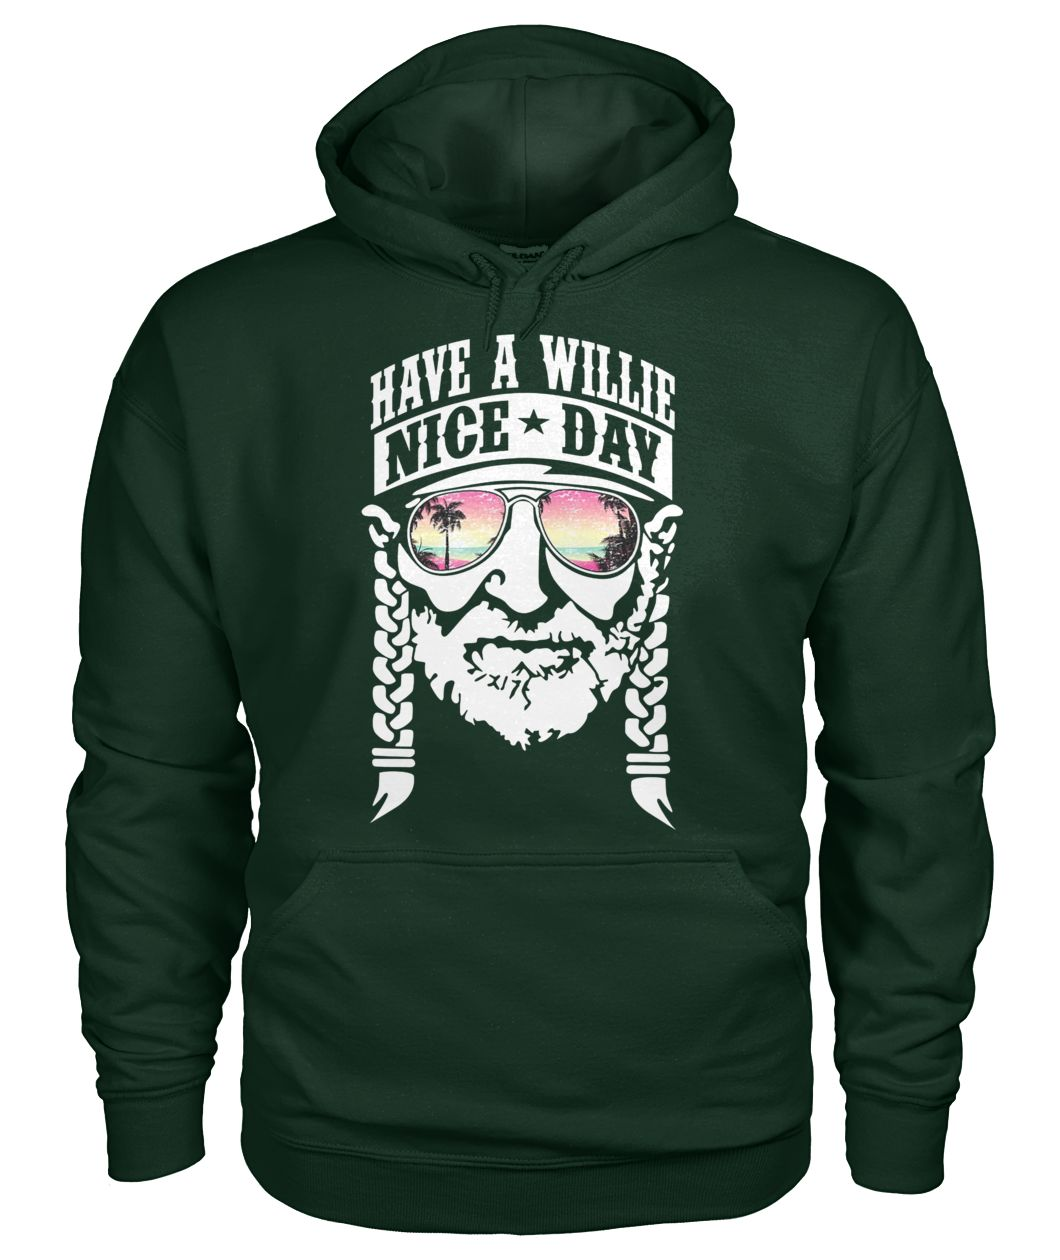 Have a willie nice day willie nelson gildan hoodie